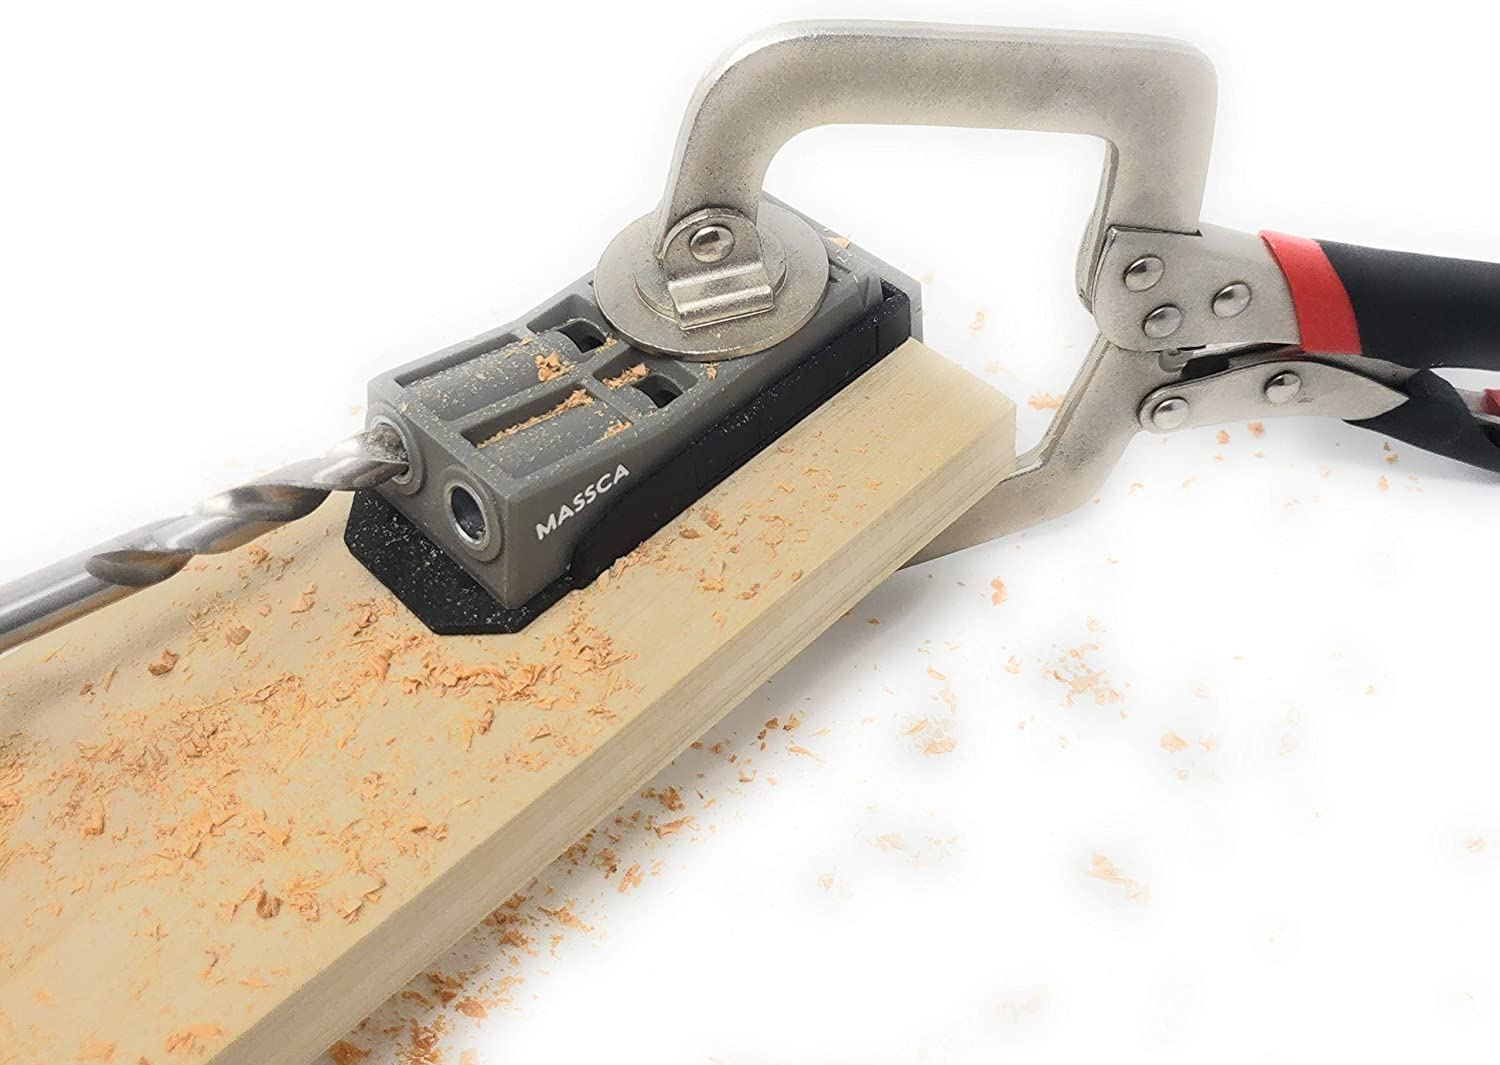 Massca Pocket Hole Jig Jig only Perfect for Joinery Woodworking DIY Carpentry Projects.